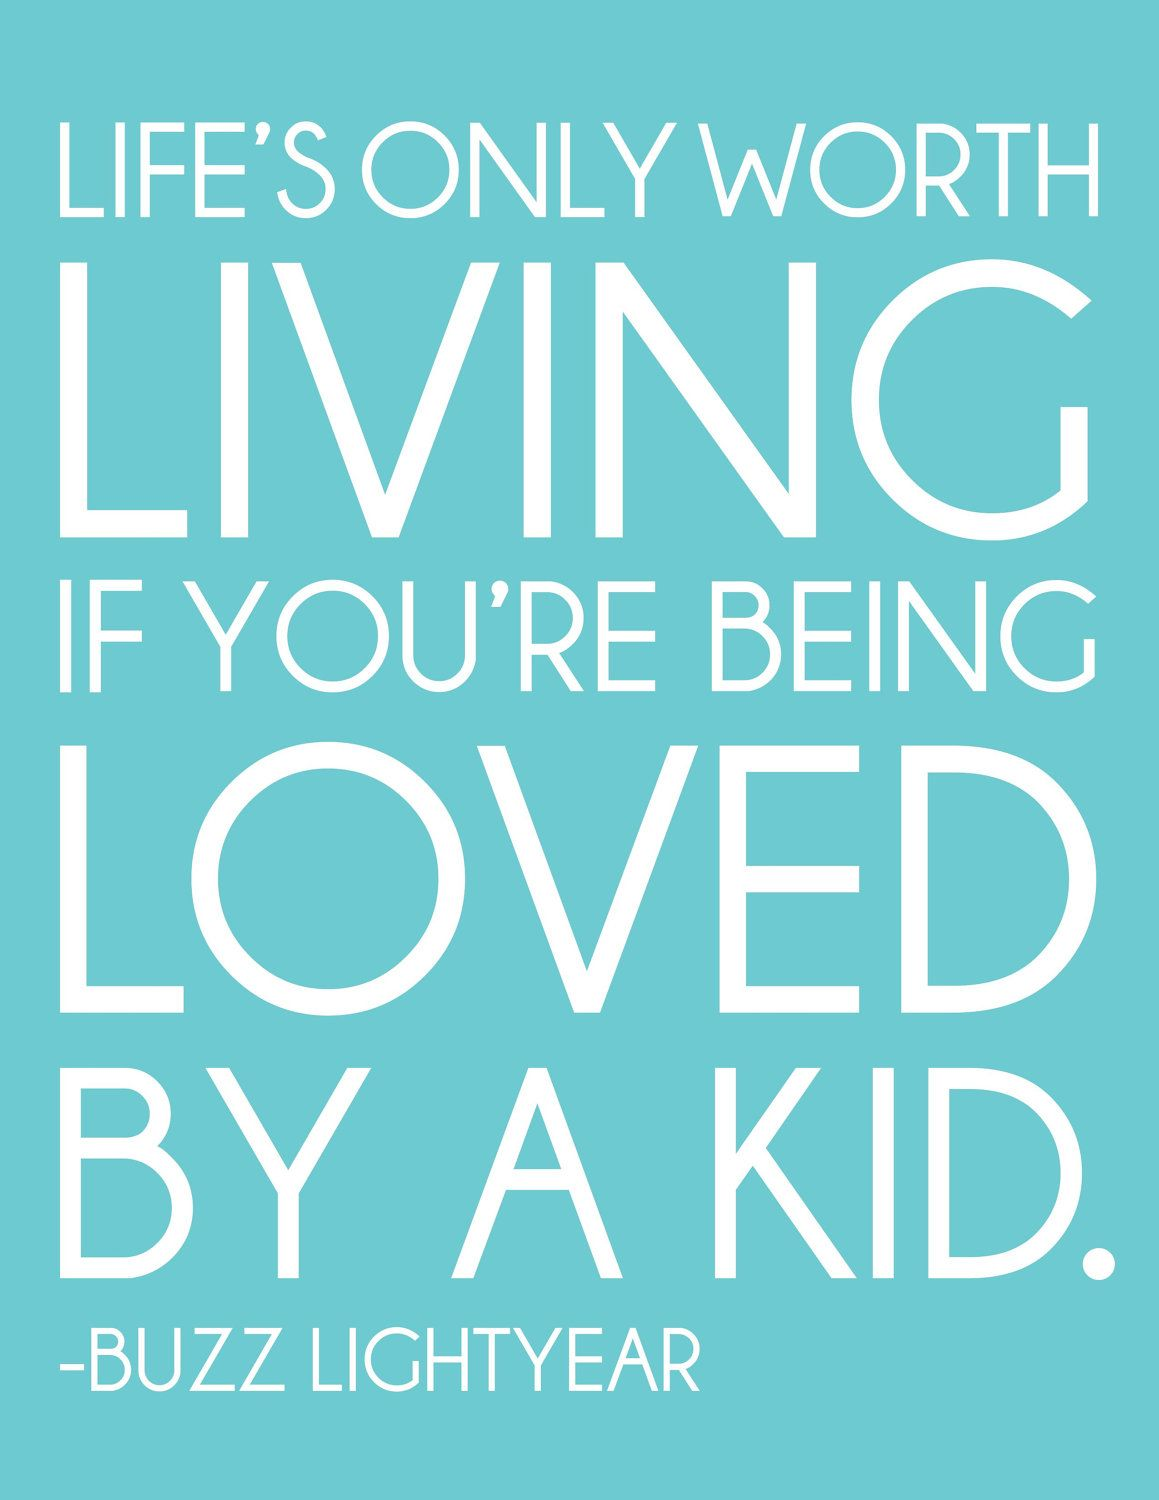 Pin By April Grizzle On Quotable Toy Story Quotes Funny Quotes Buzz Lightyear Quotes